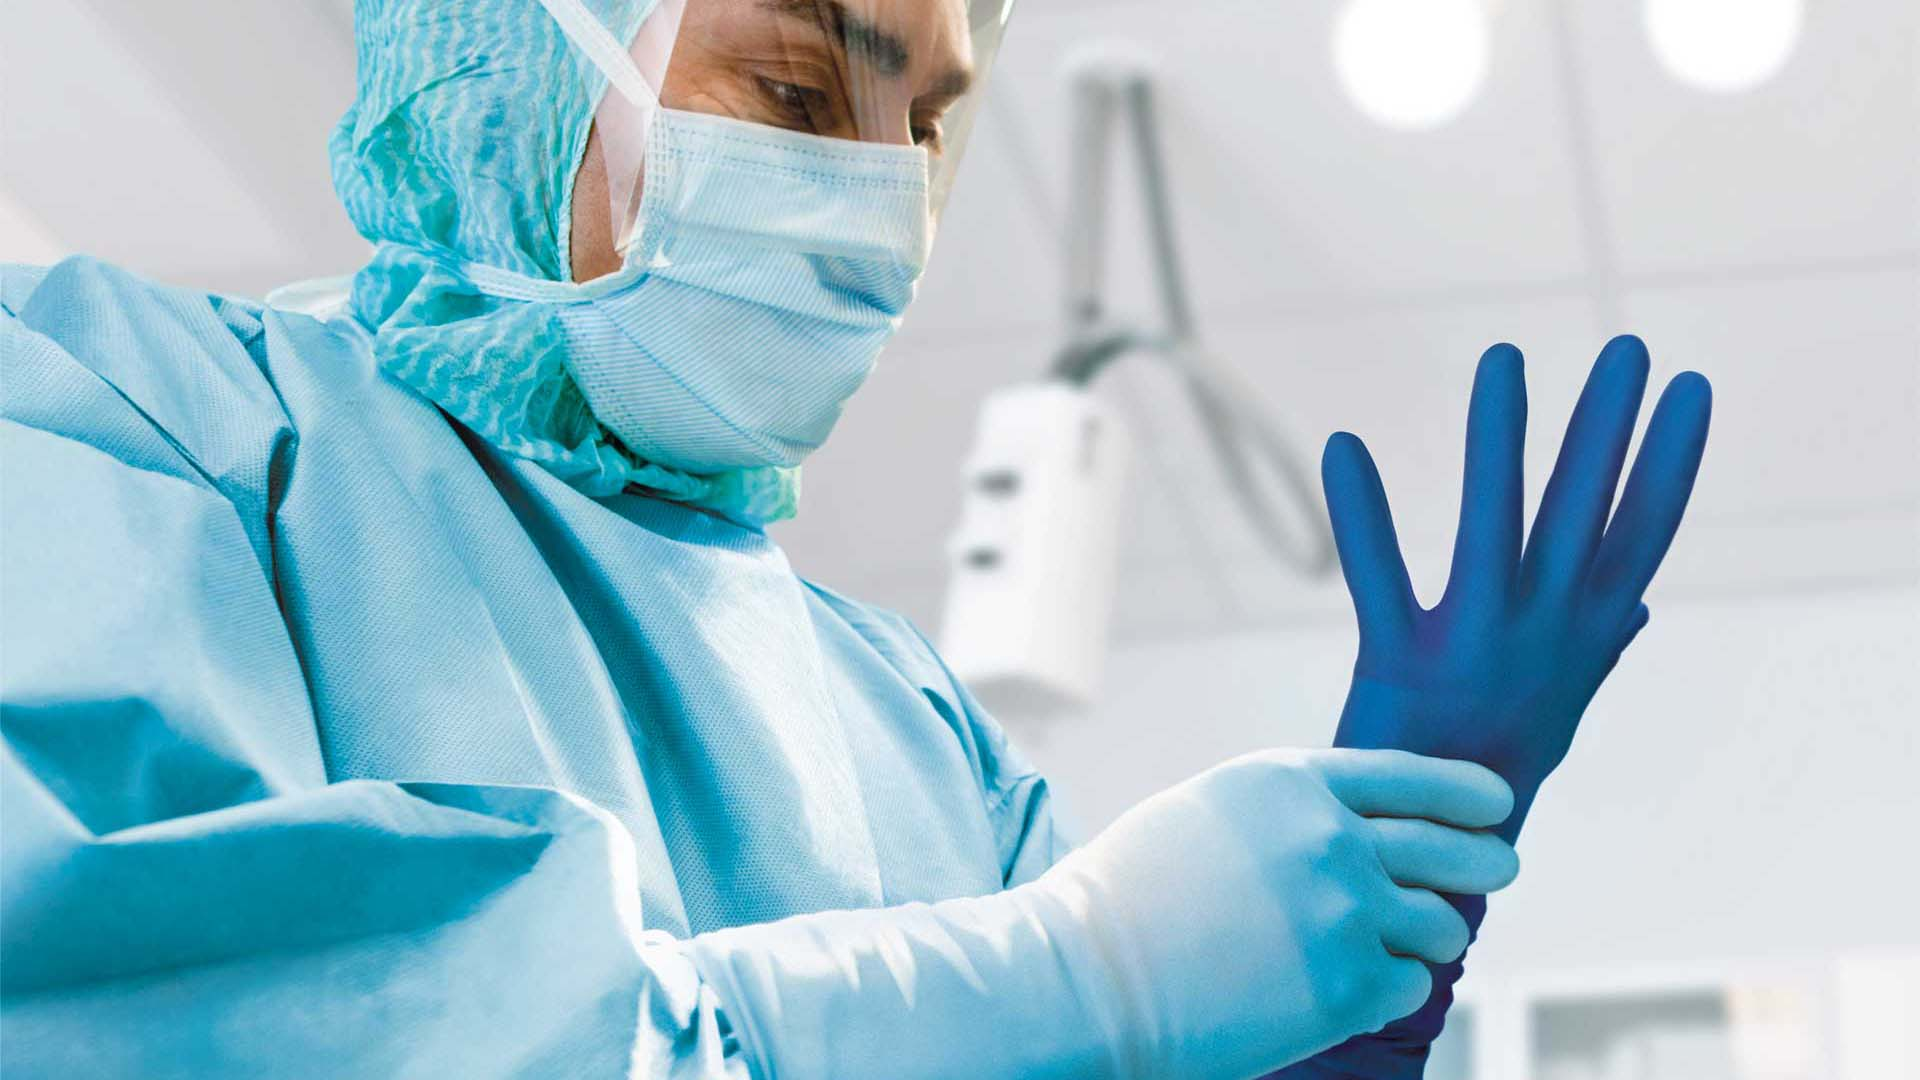 Surgeon using Biogel gloves with puncture indication